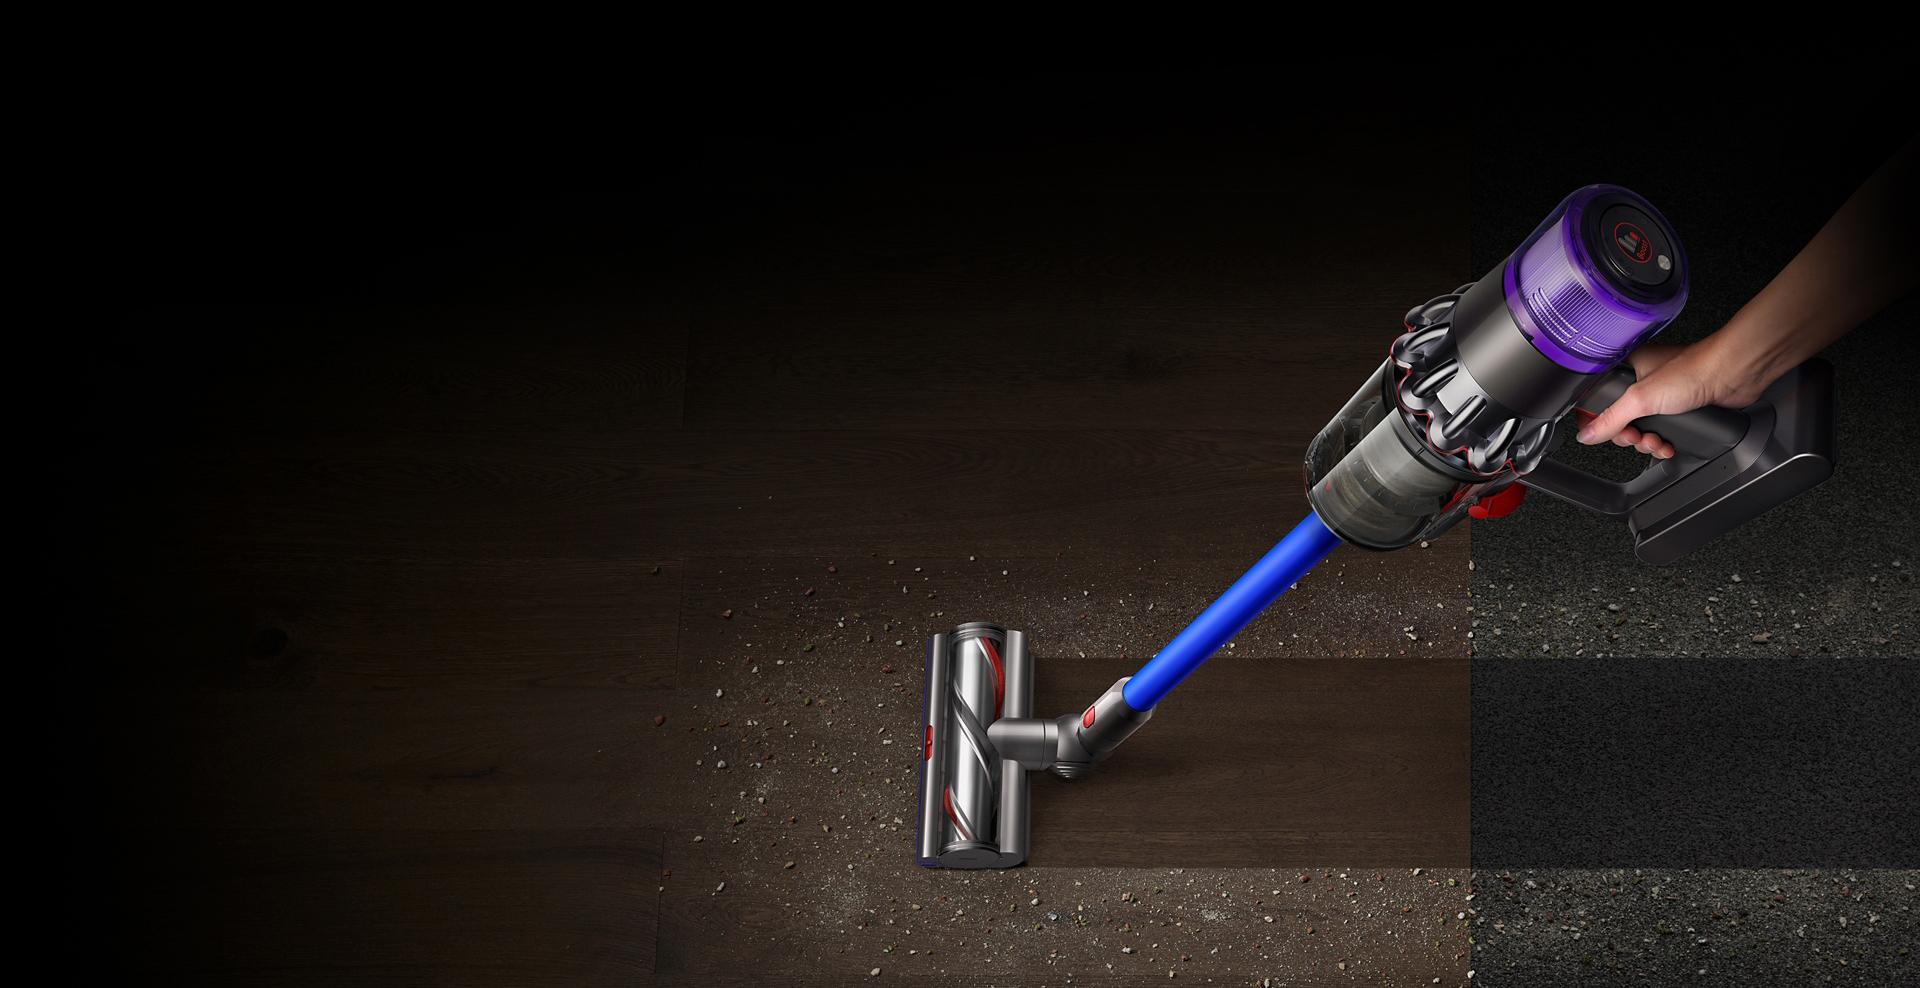 A Dyson V11™ vacuum picking up fine dust, allergens and pollen from the floor.